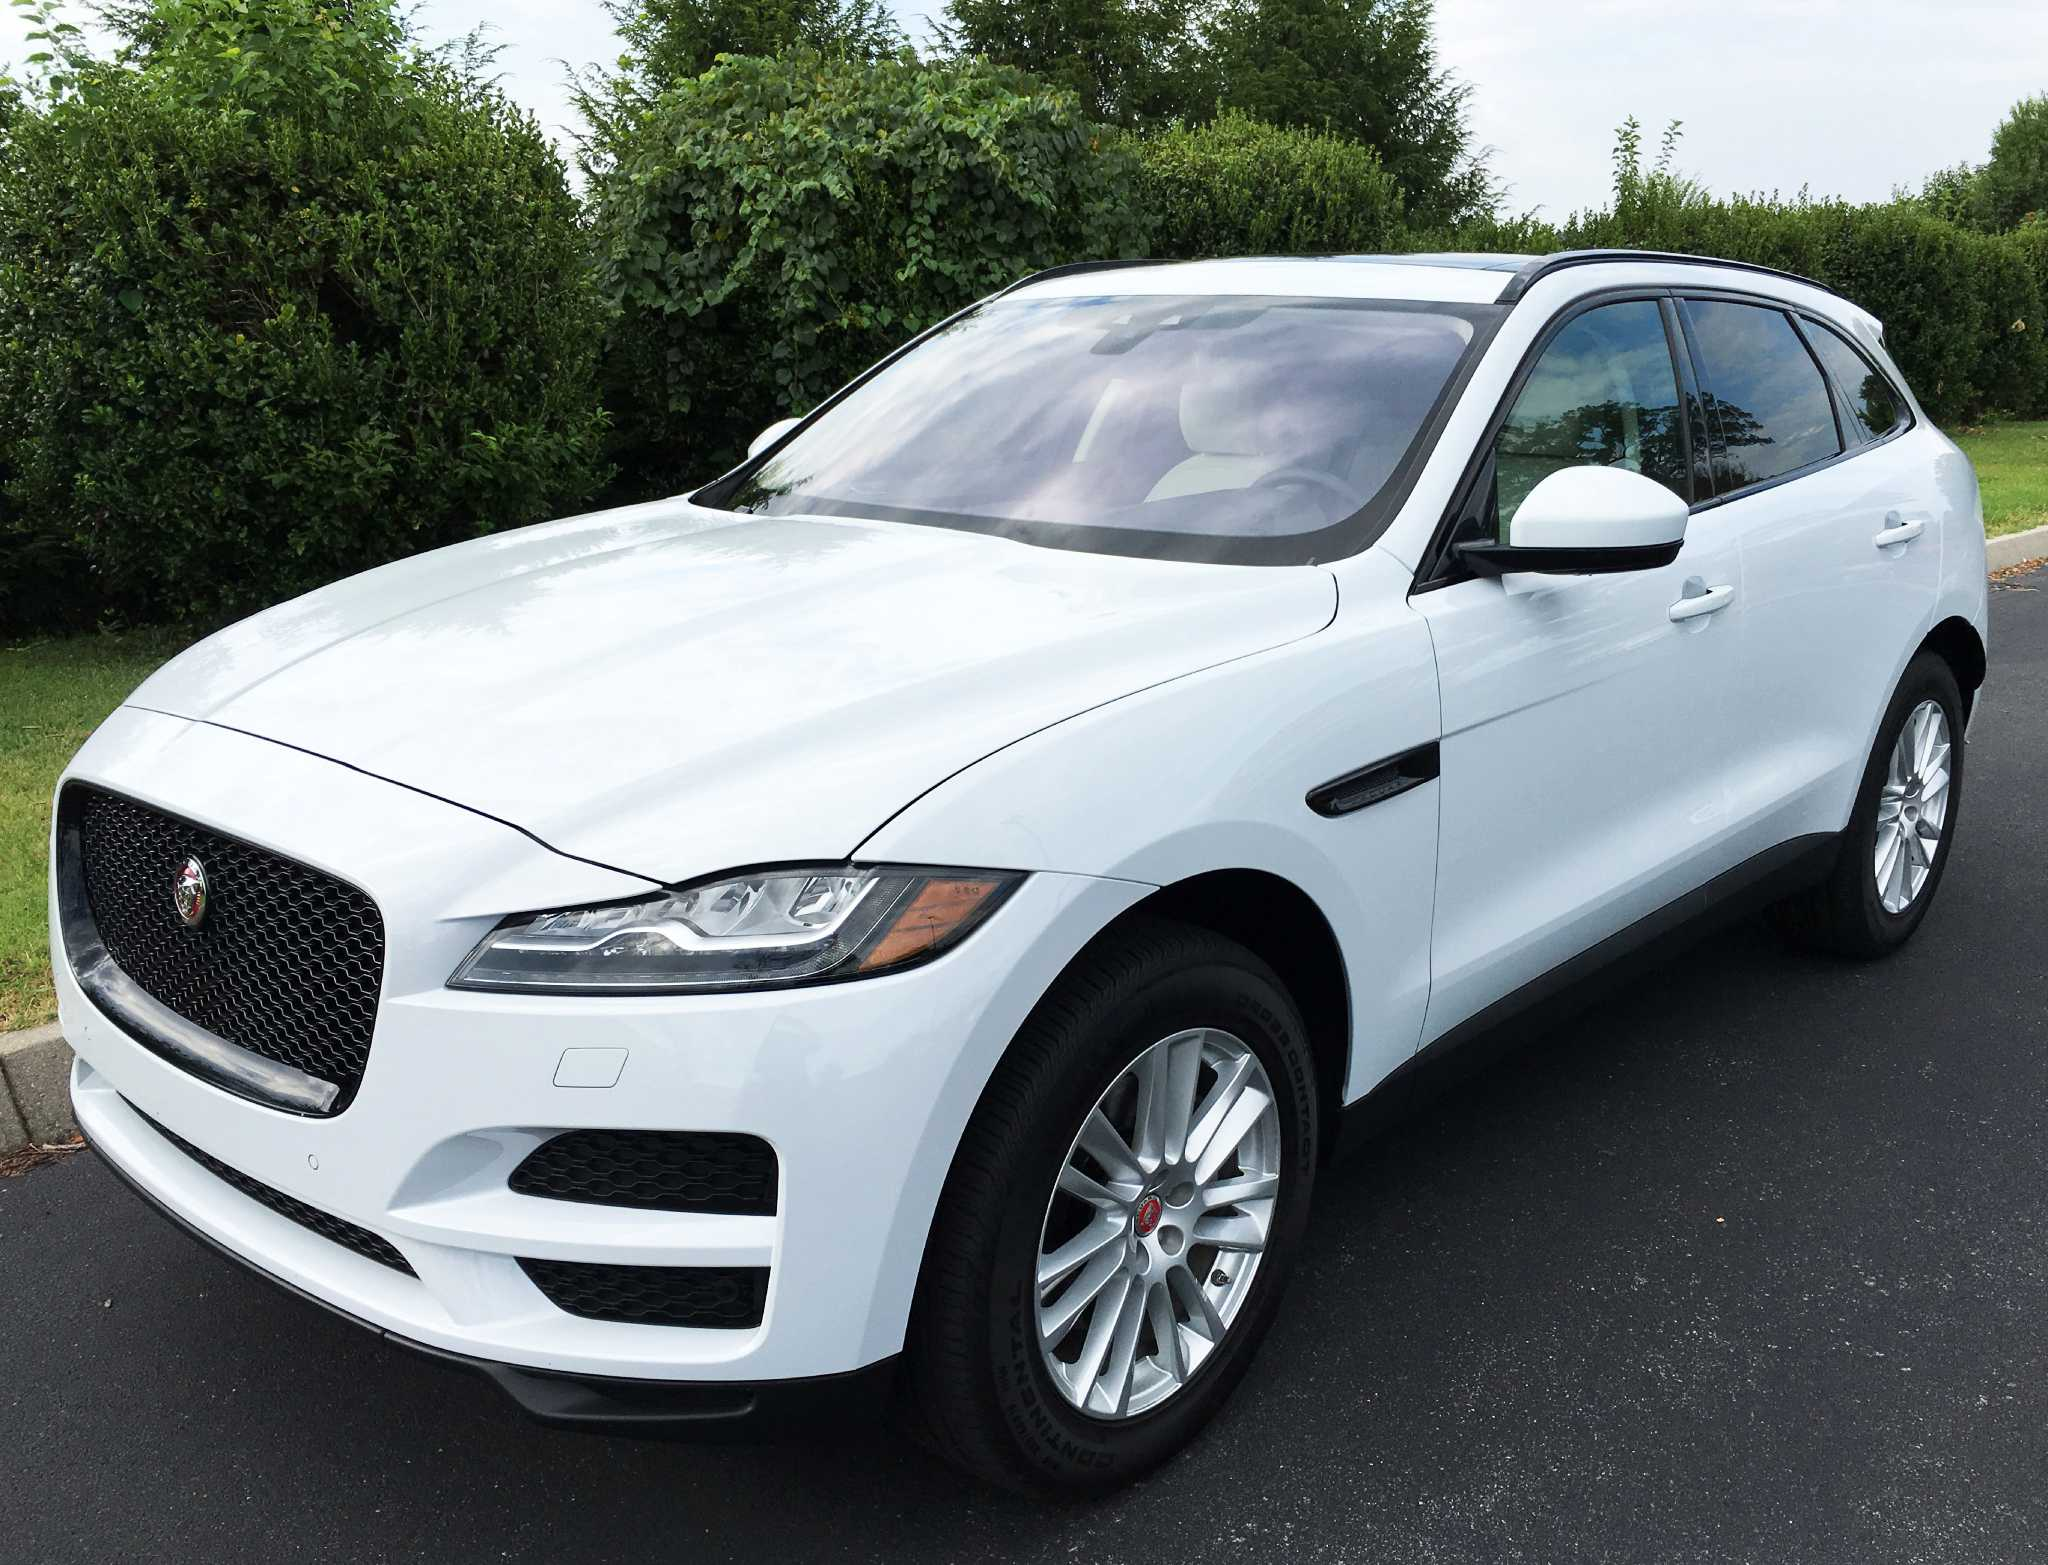 Jaguar introduces 2016 F-Pace